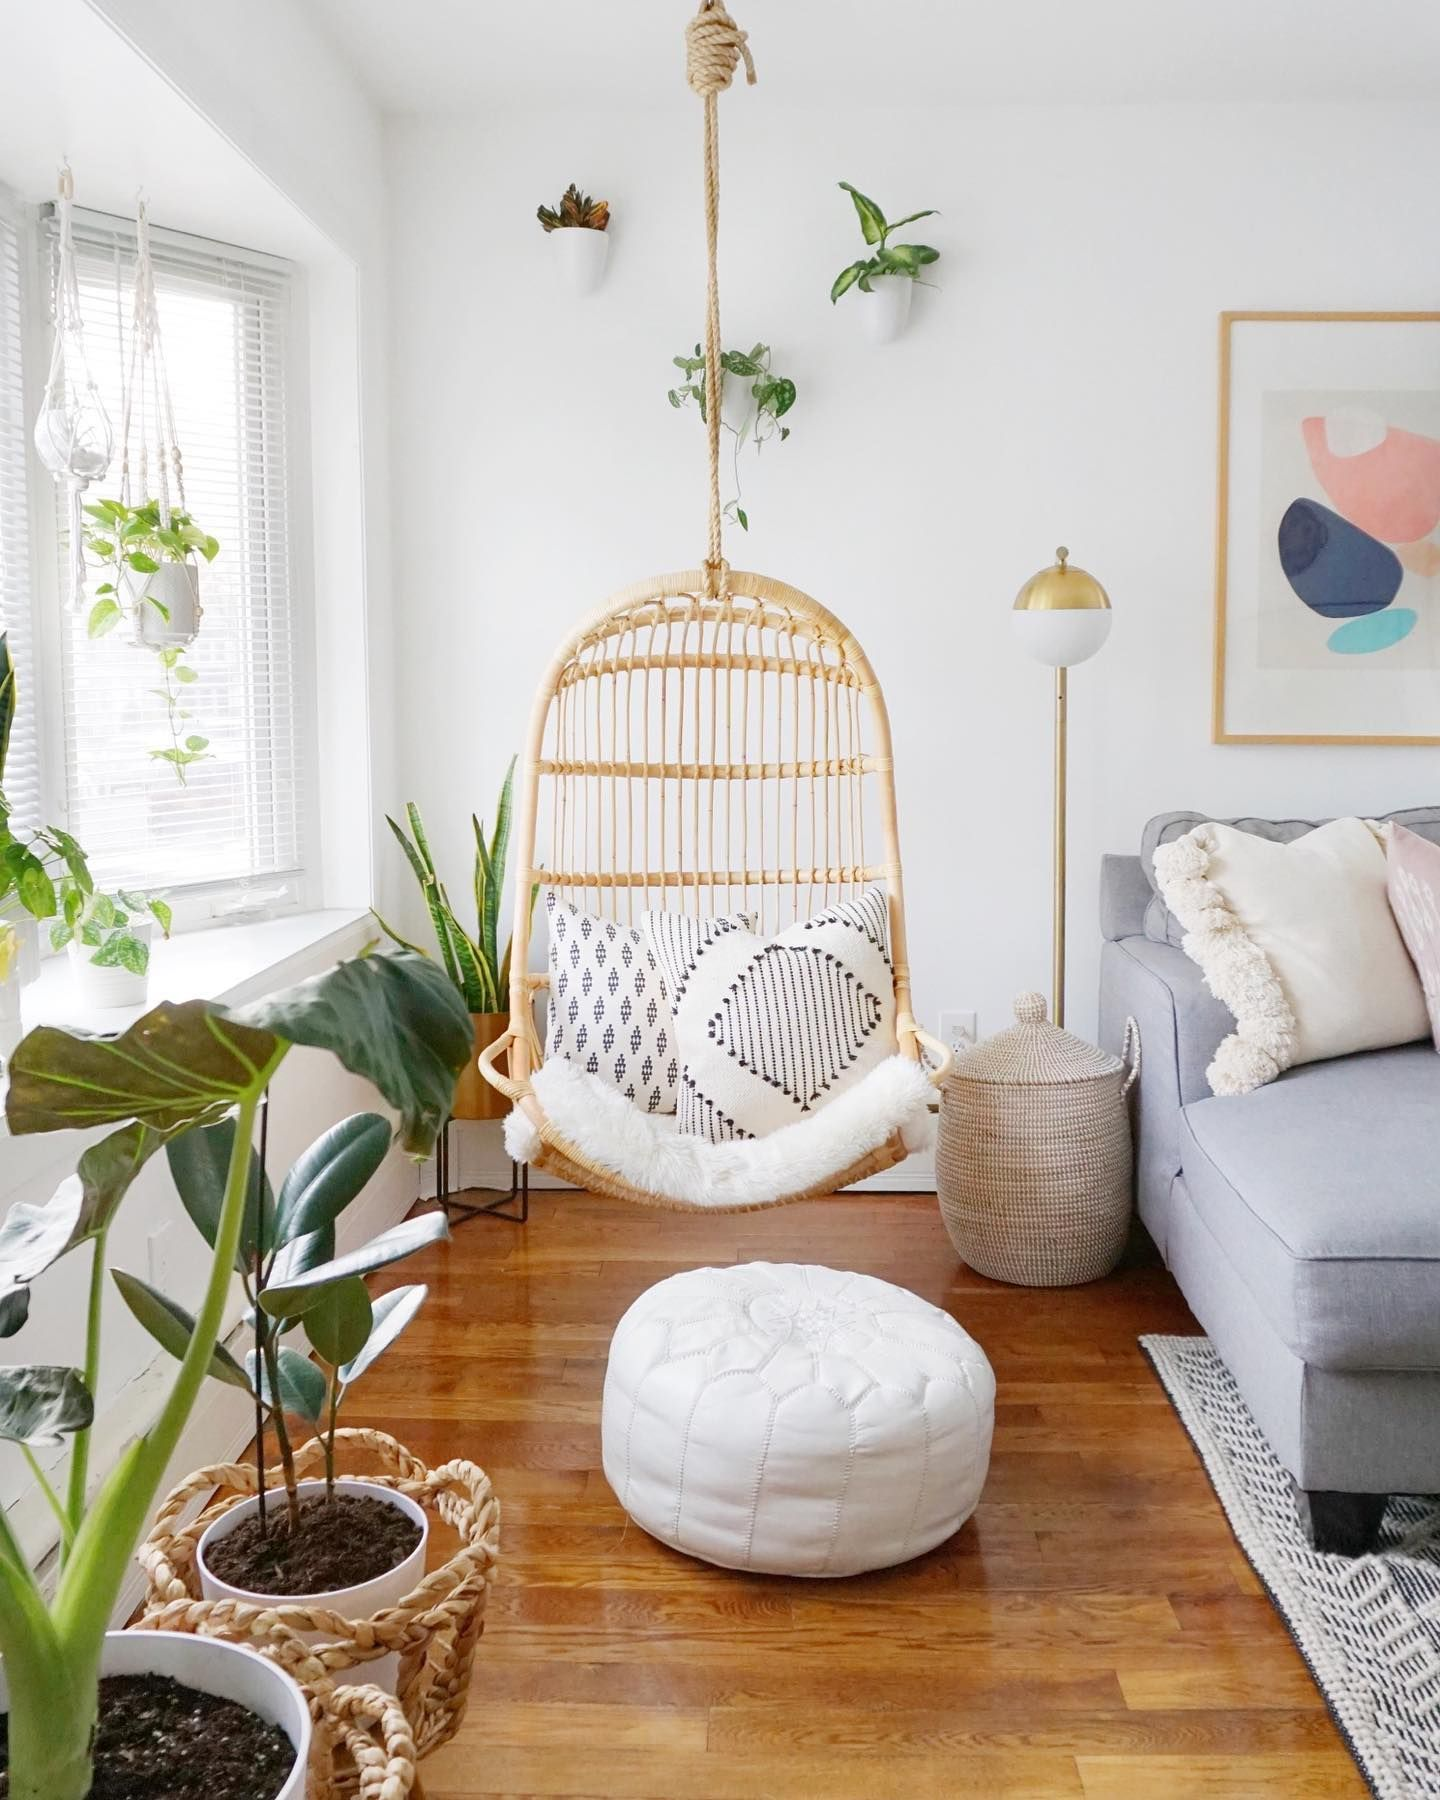 Pin By Emilia On House Ideas In 2021 Hanging Chair Living Room Living Room Chairs Hanging Rattan Chair